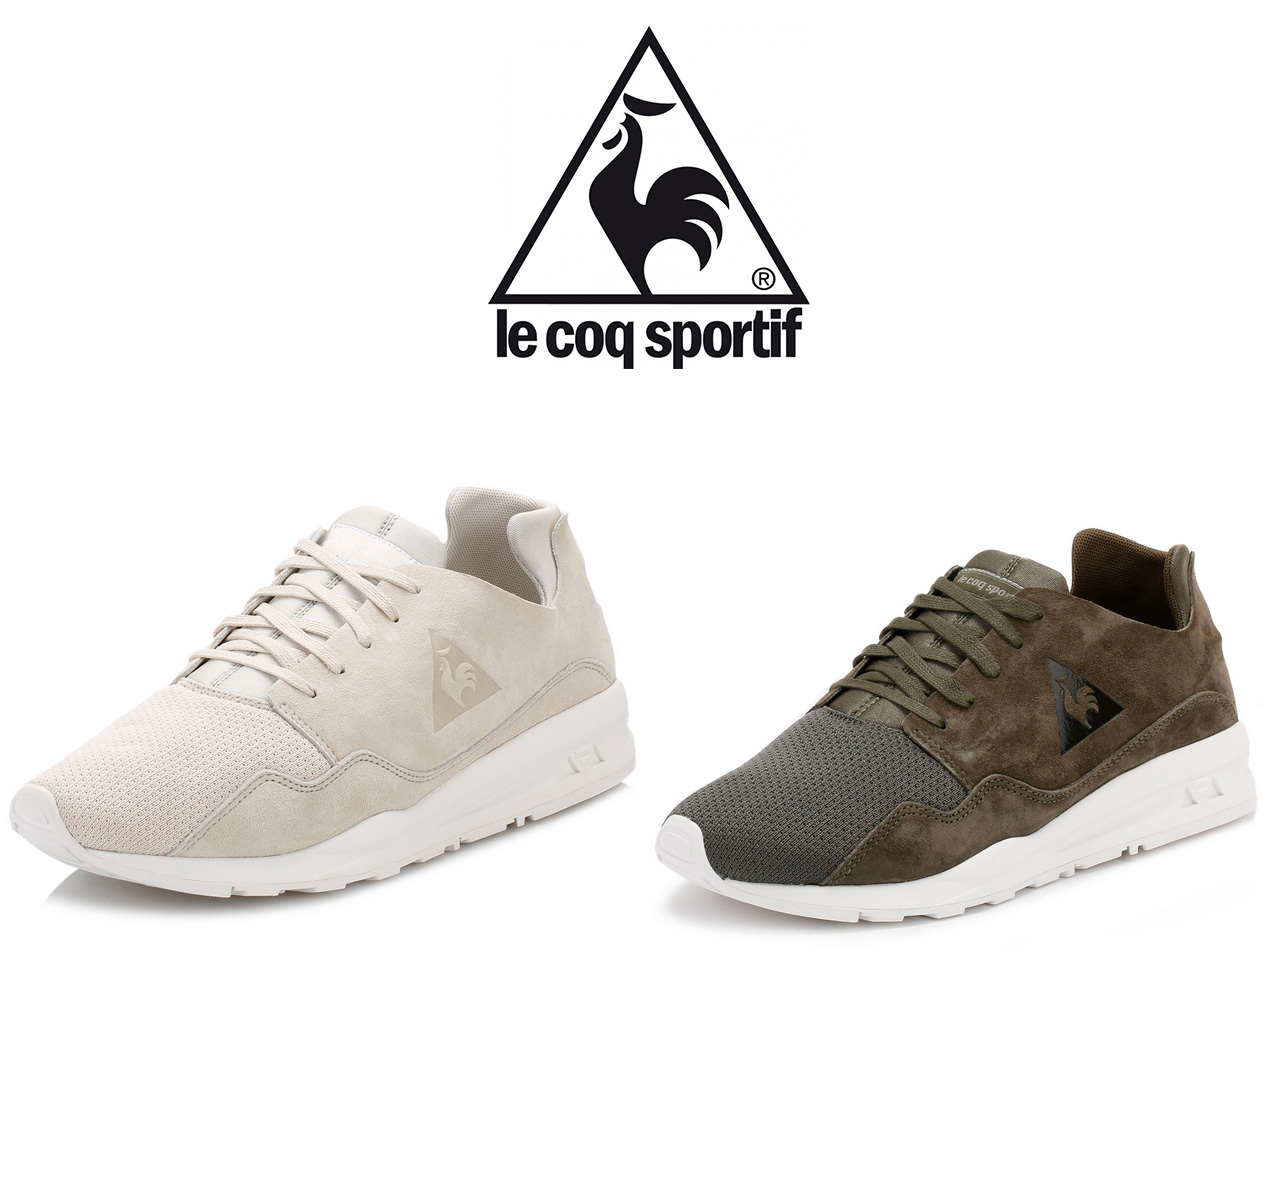 7509130aae24 Complete with signature Le Coq Sportif branding. Le Coq Sportif goes back  to their roots